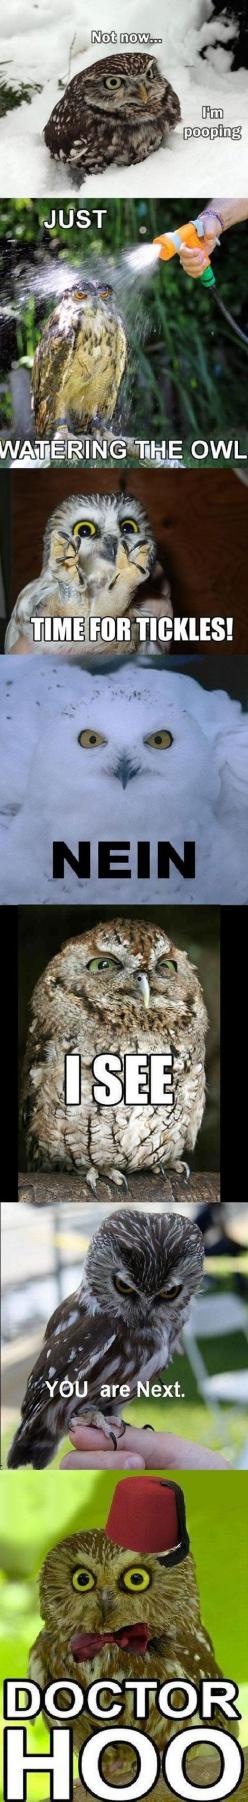 Just some owls doing owl things.: Giggle, Animals, Silly Owls, Owl Humor, Funny Owls, Doctor Hoo, Funnies, So Funny